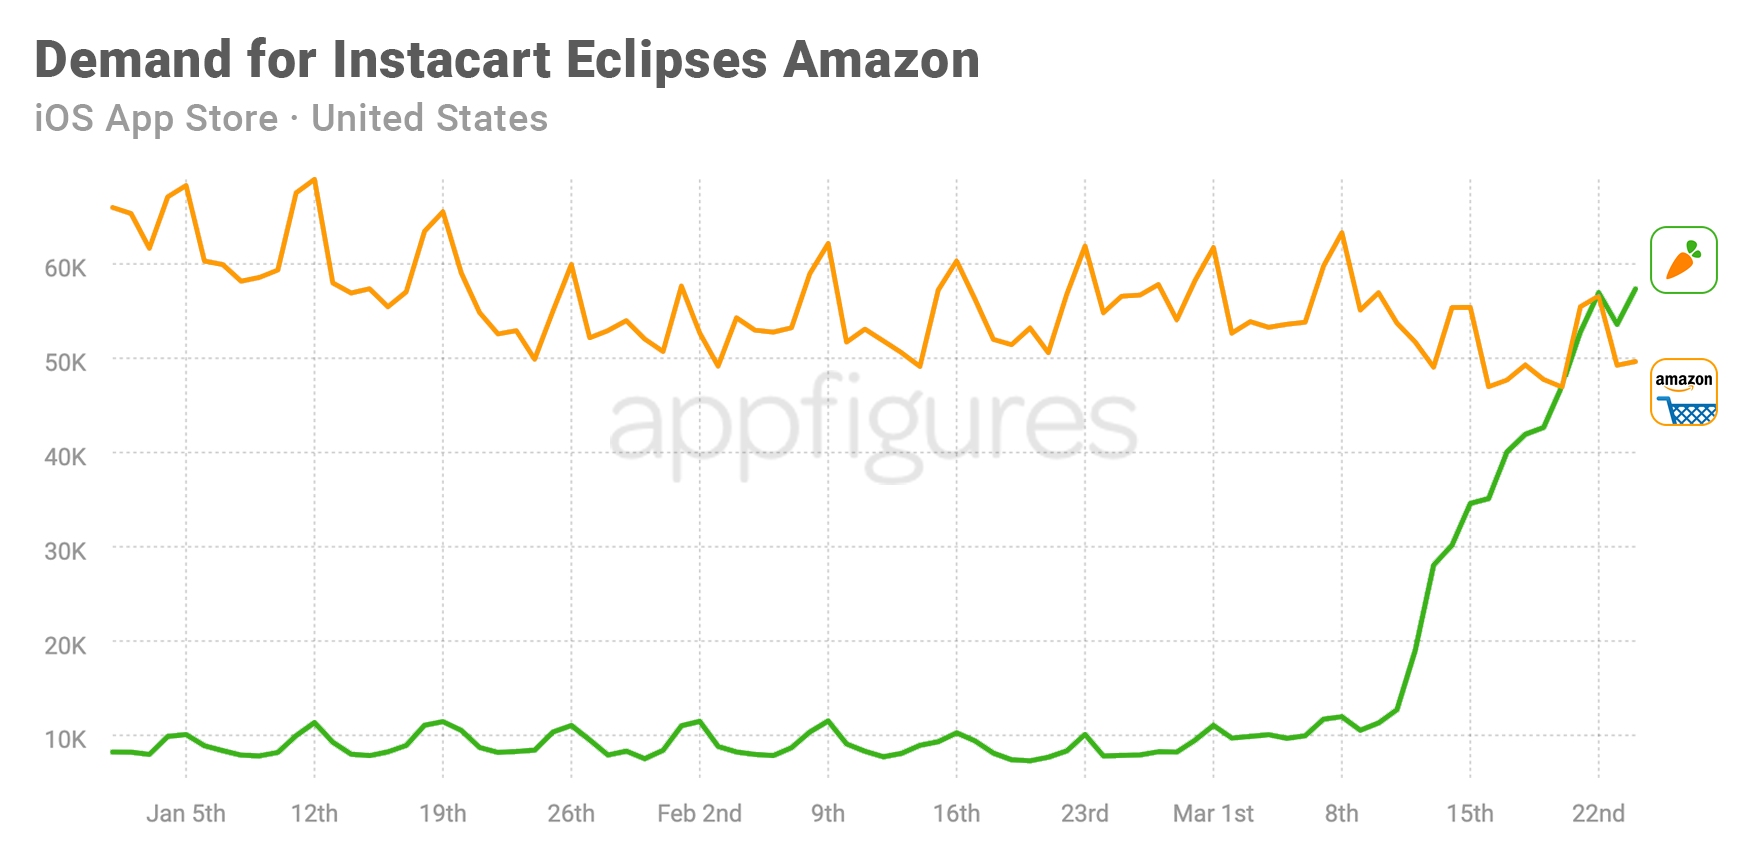 Instacart becomes more popular than Amazon